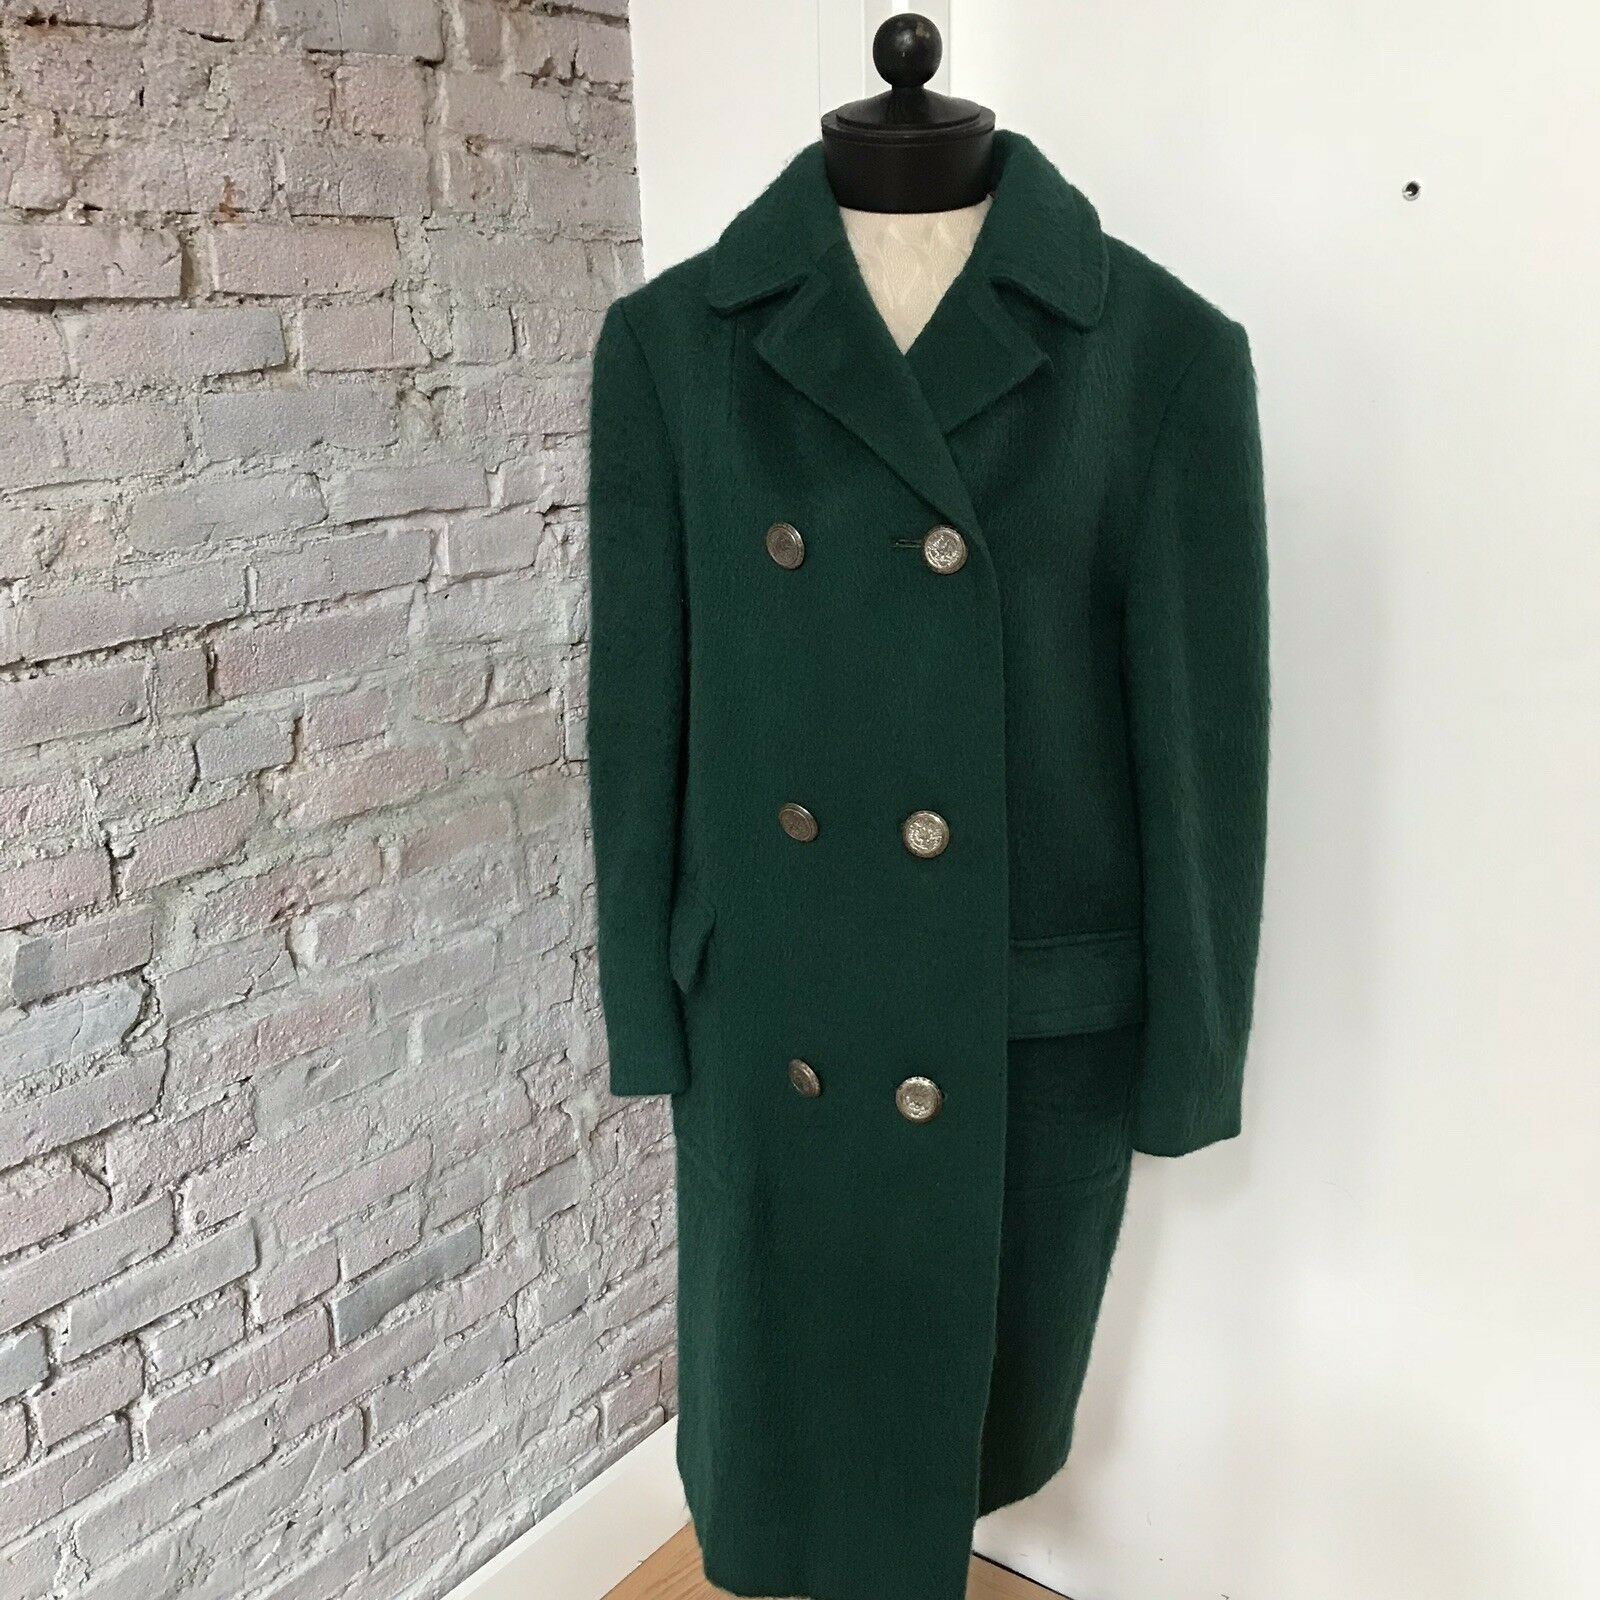 9a00ee0ede36 Vintage 1842 Austria WOOL Peacoat Double Breasted M Green LODENFREY ...